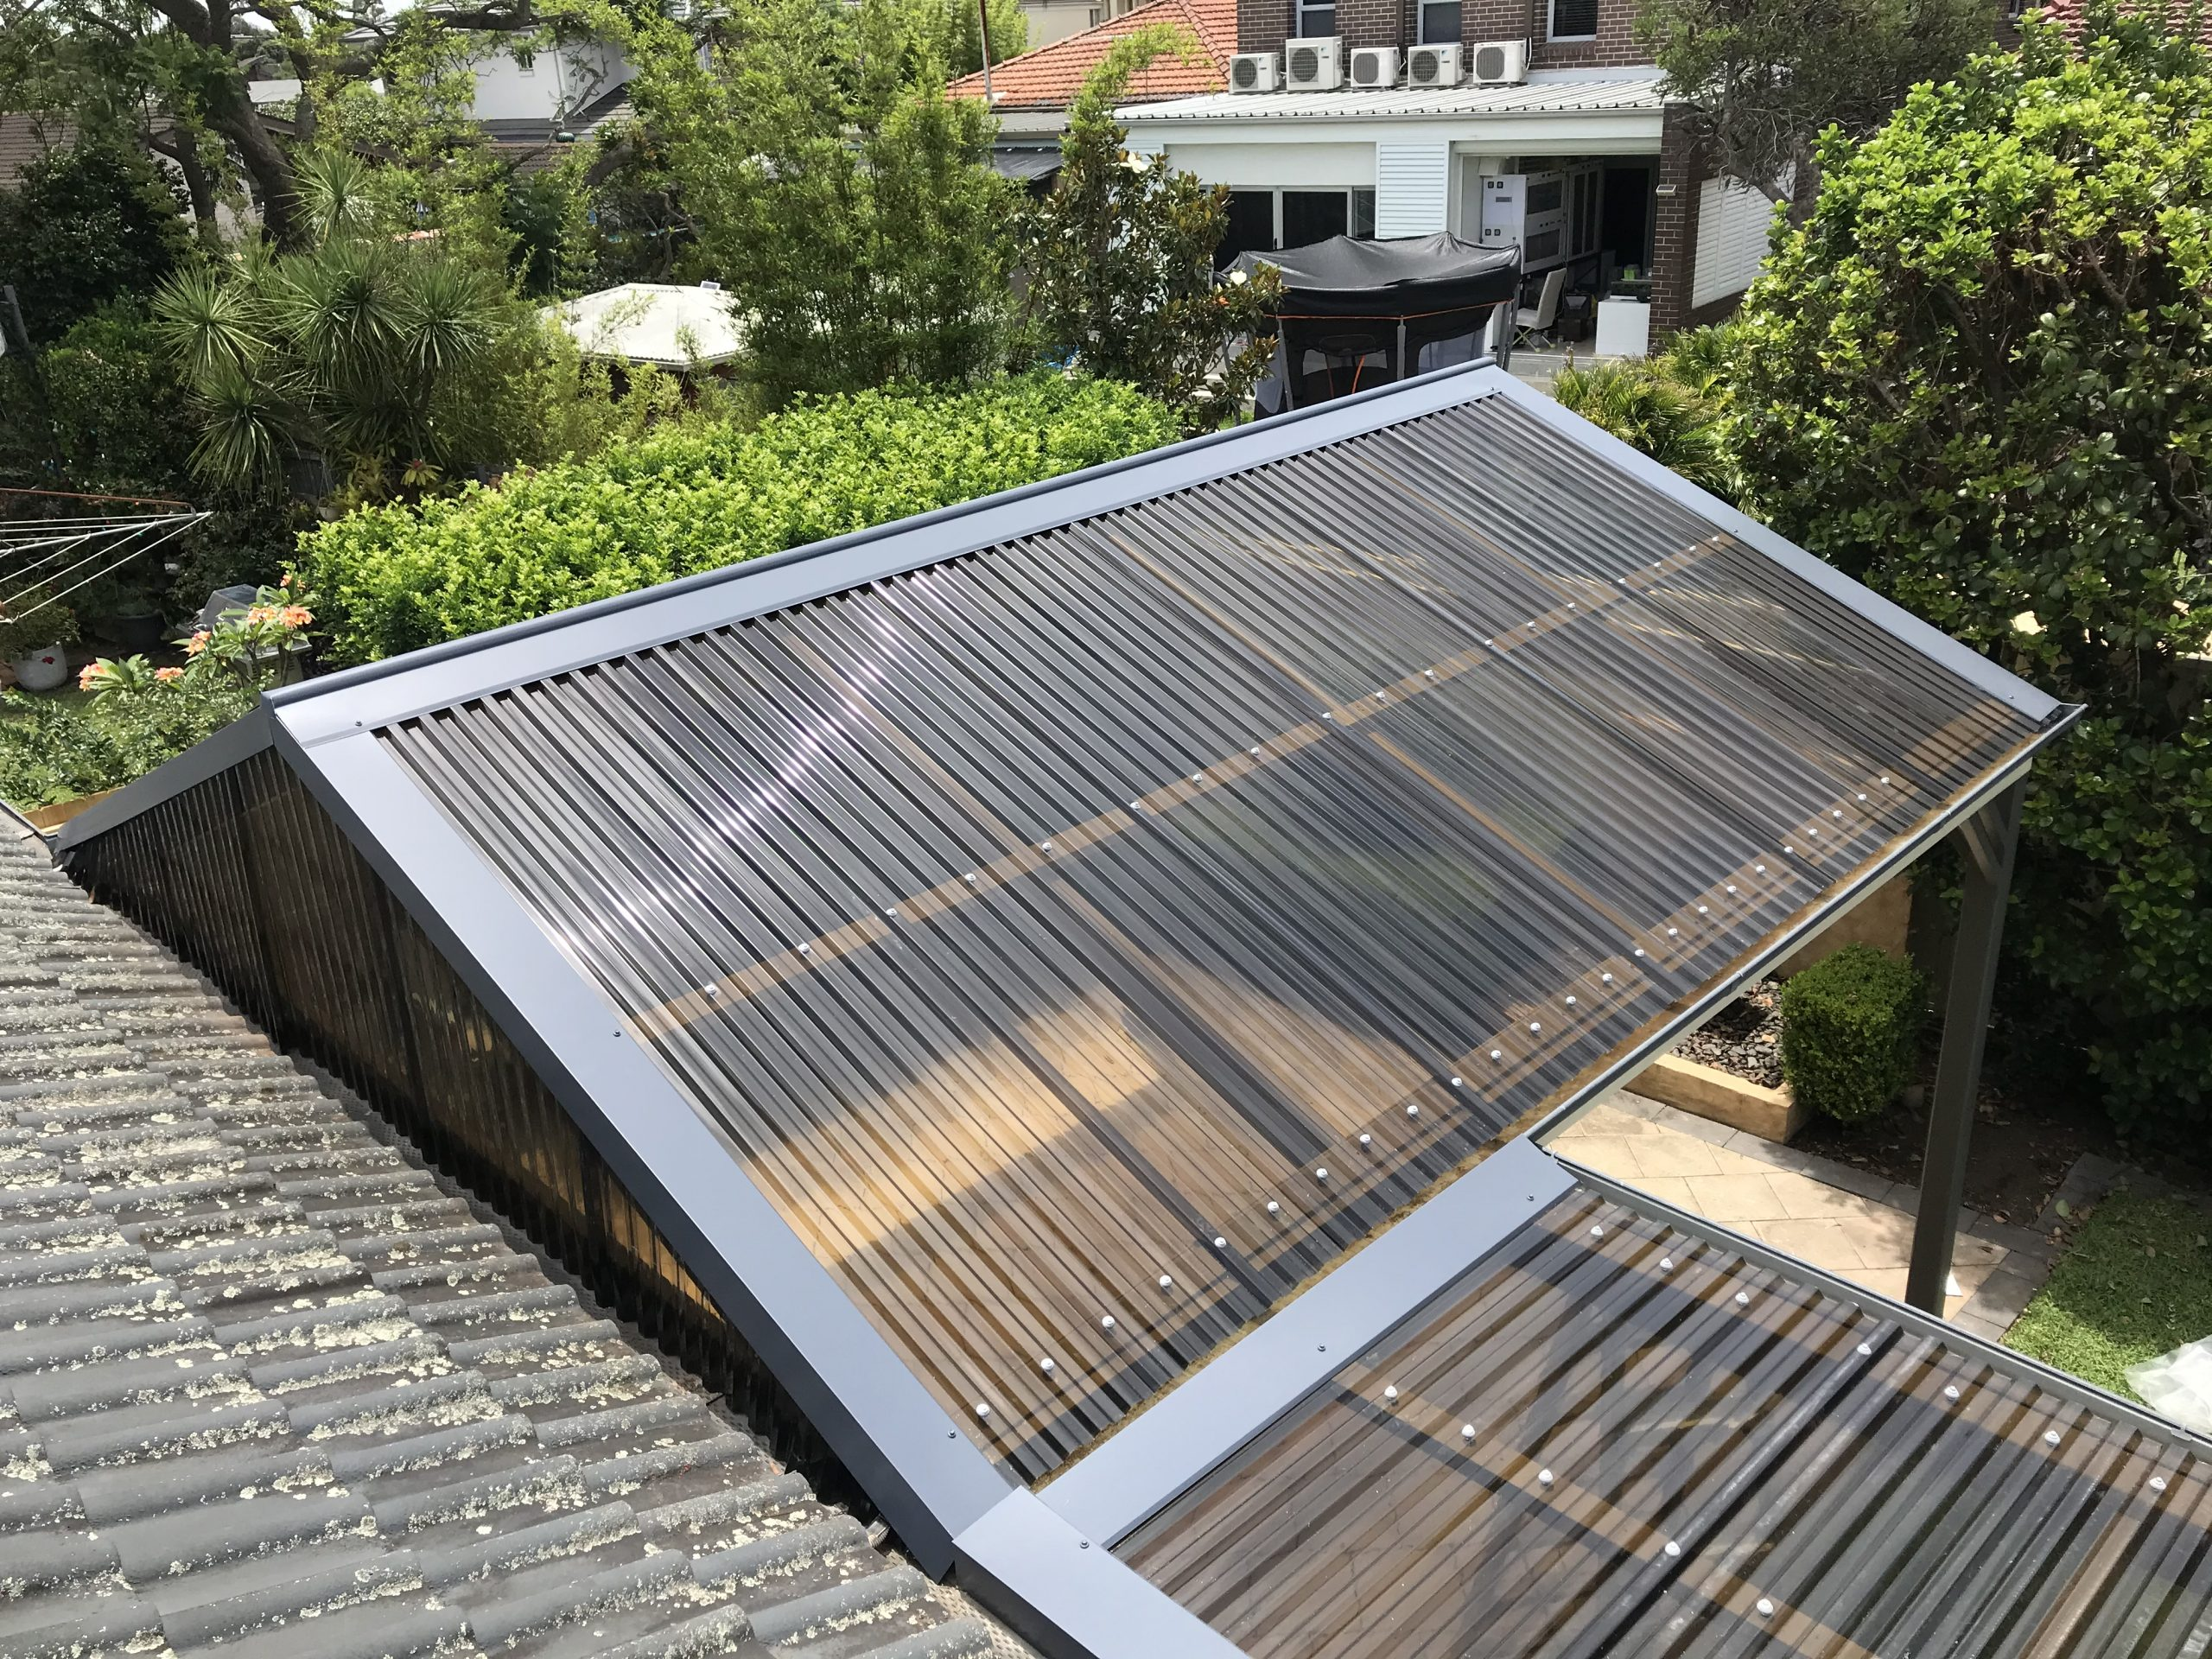 Polycarbonate roof and flashings